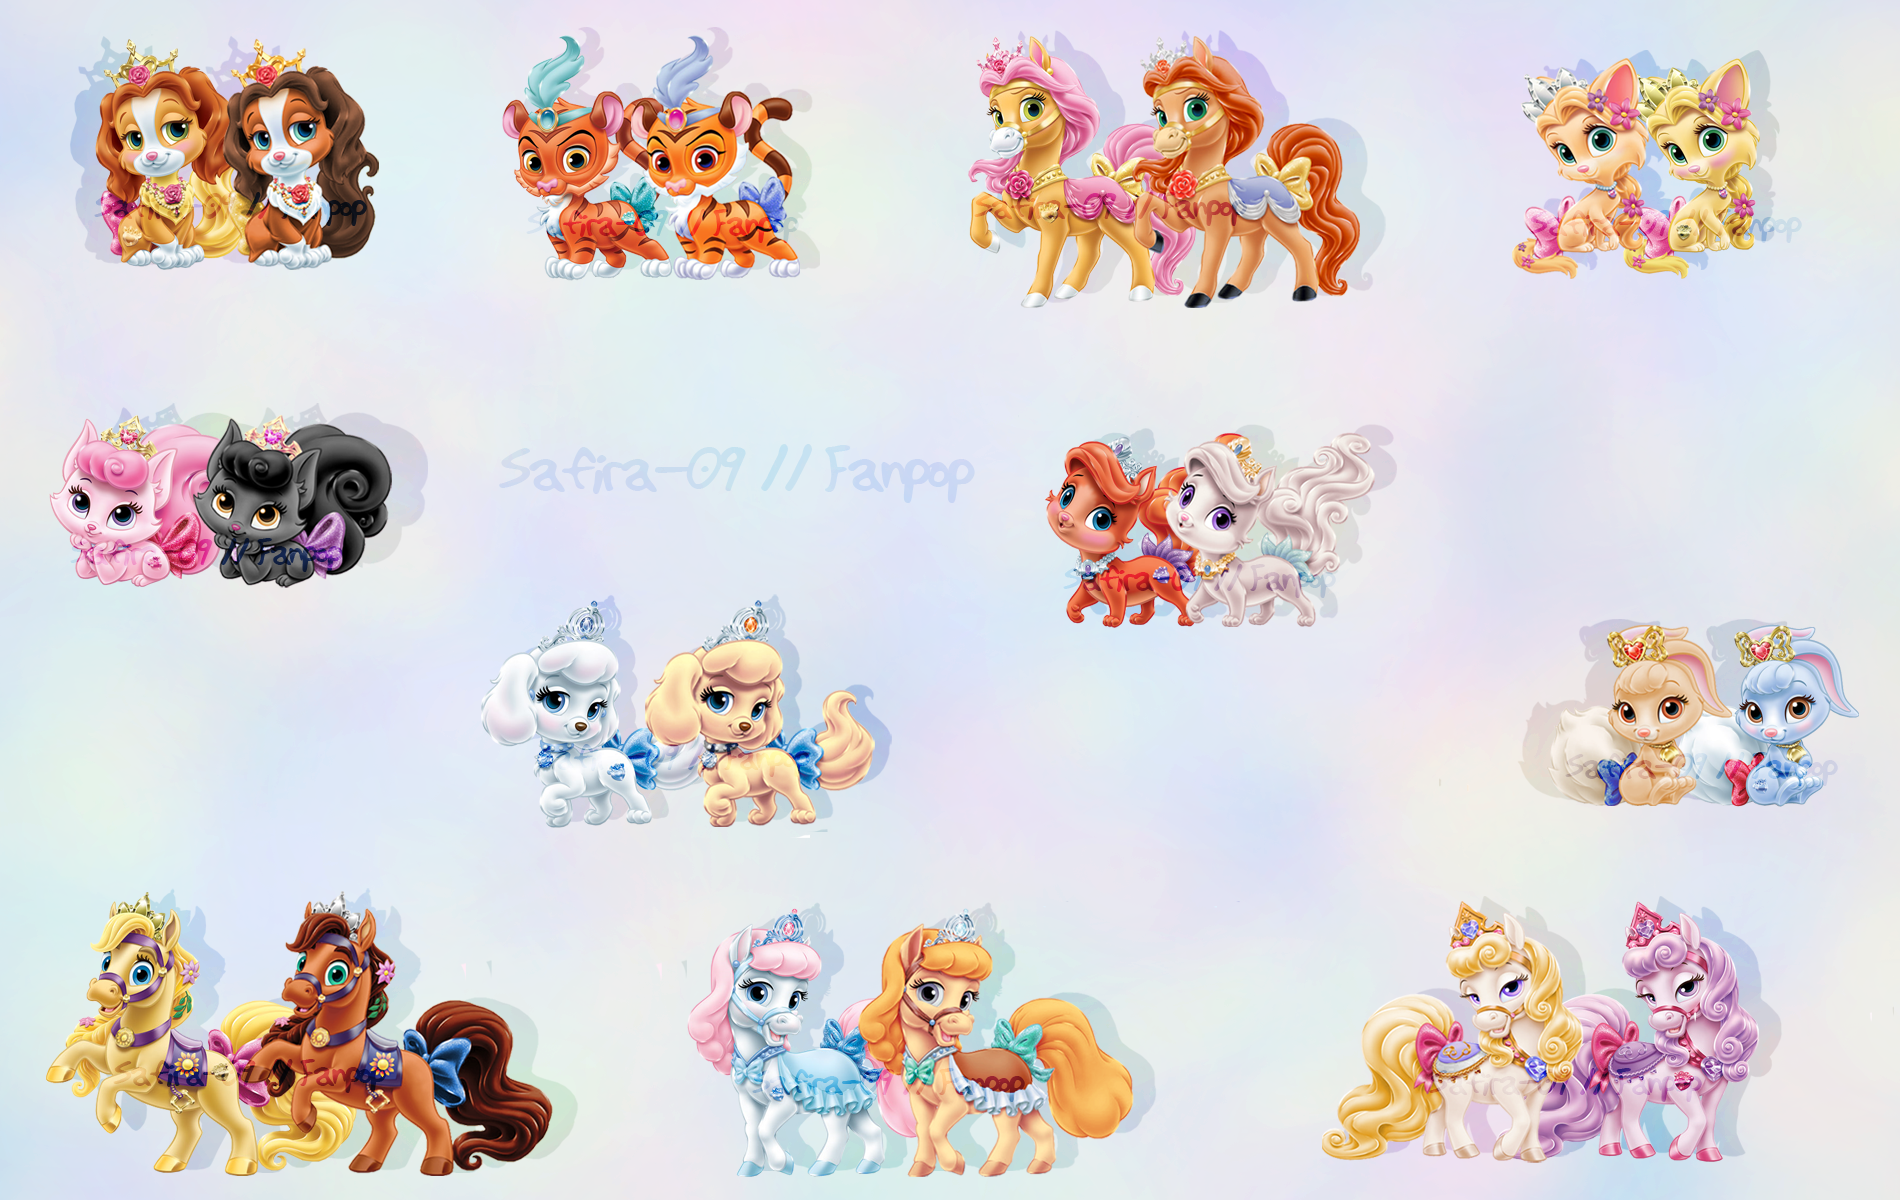 Palace Pets recolored - Childhood Animated Movie Heroines Photo ...